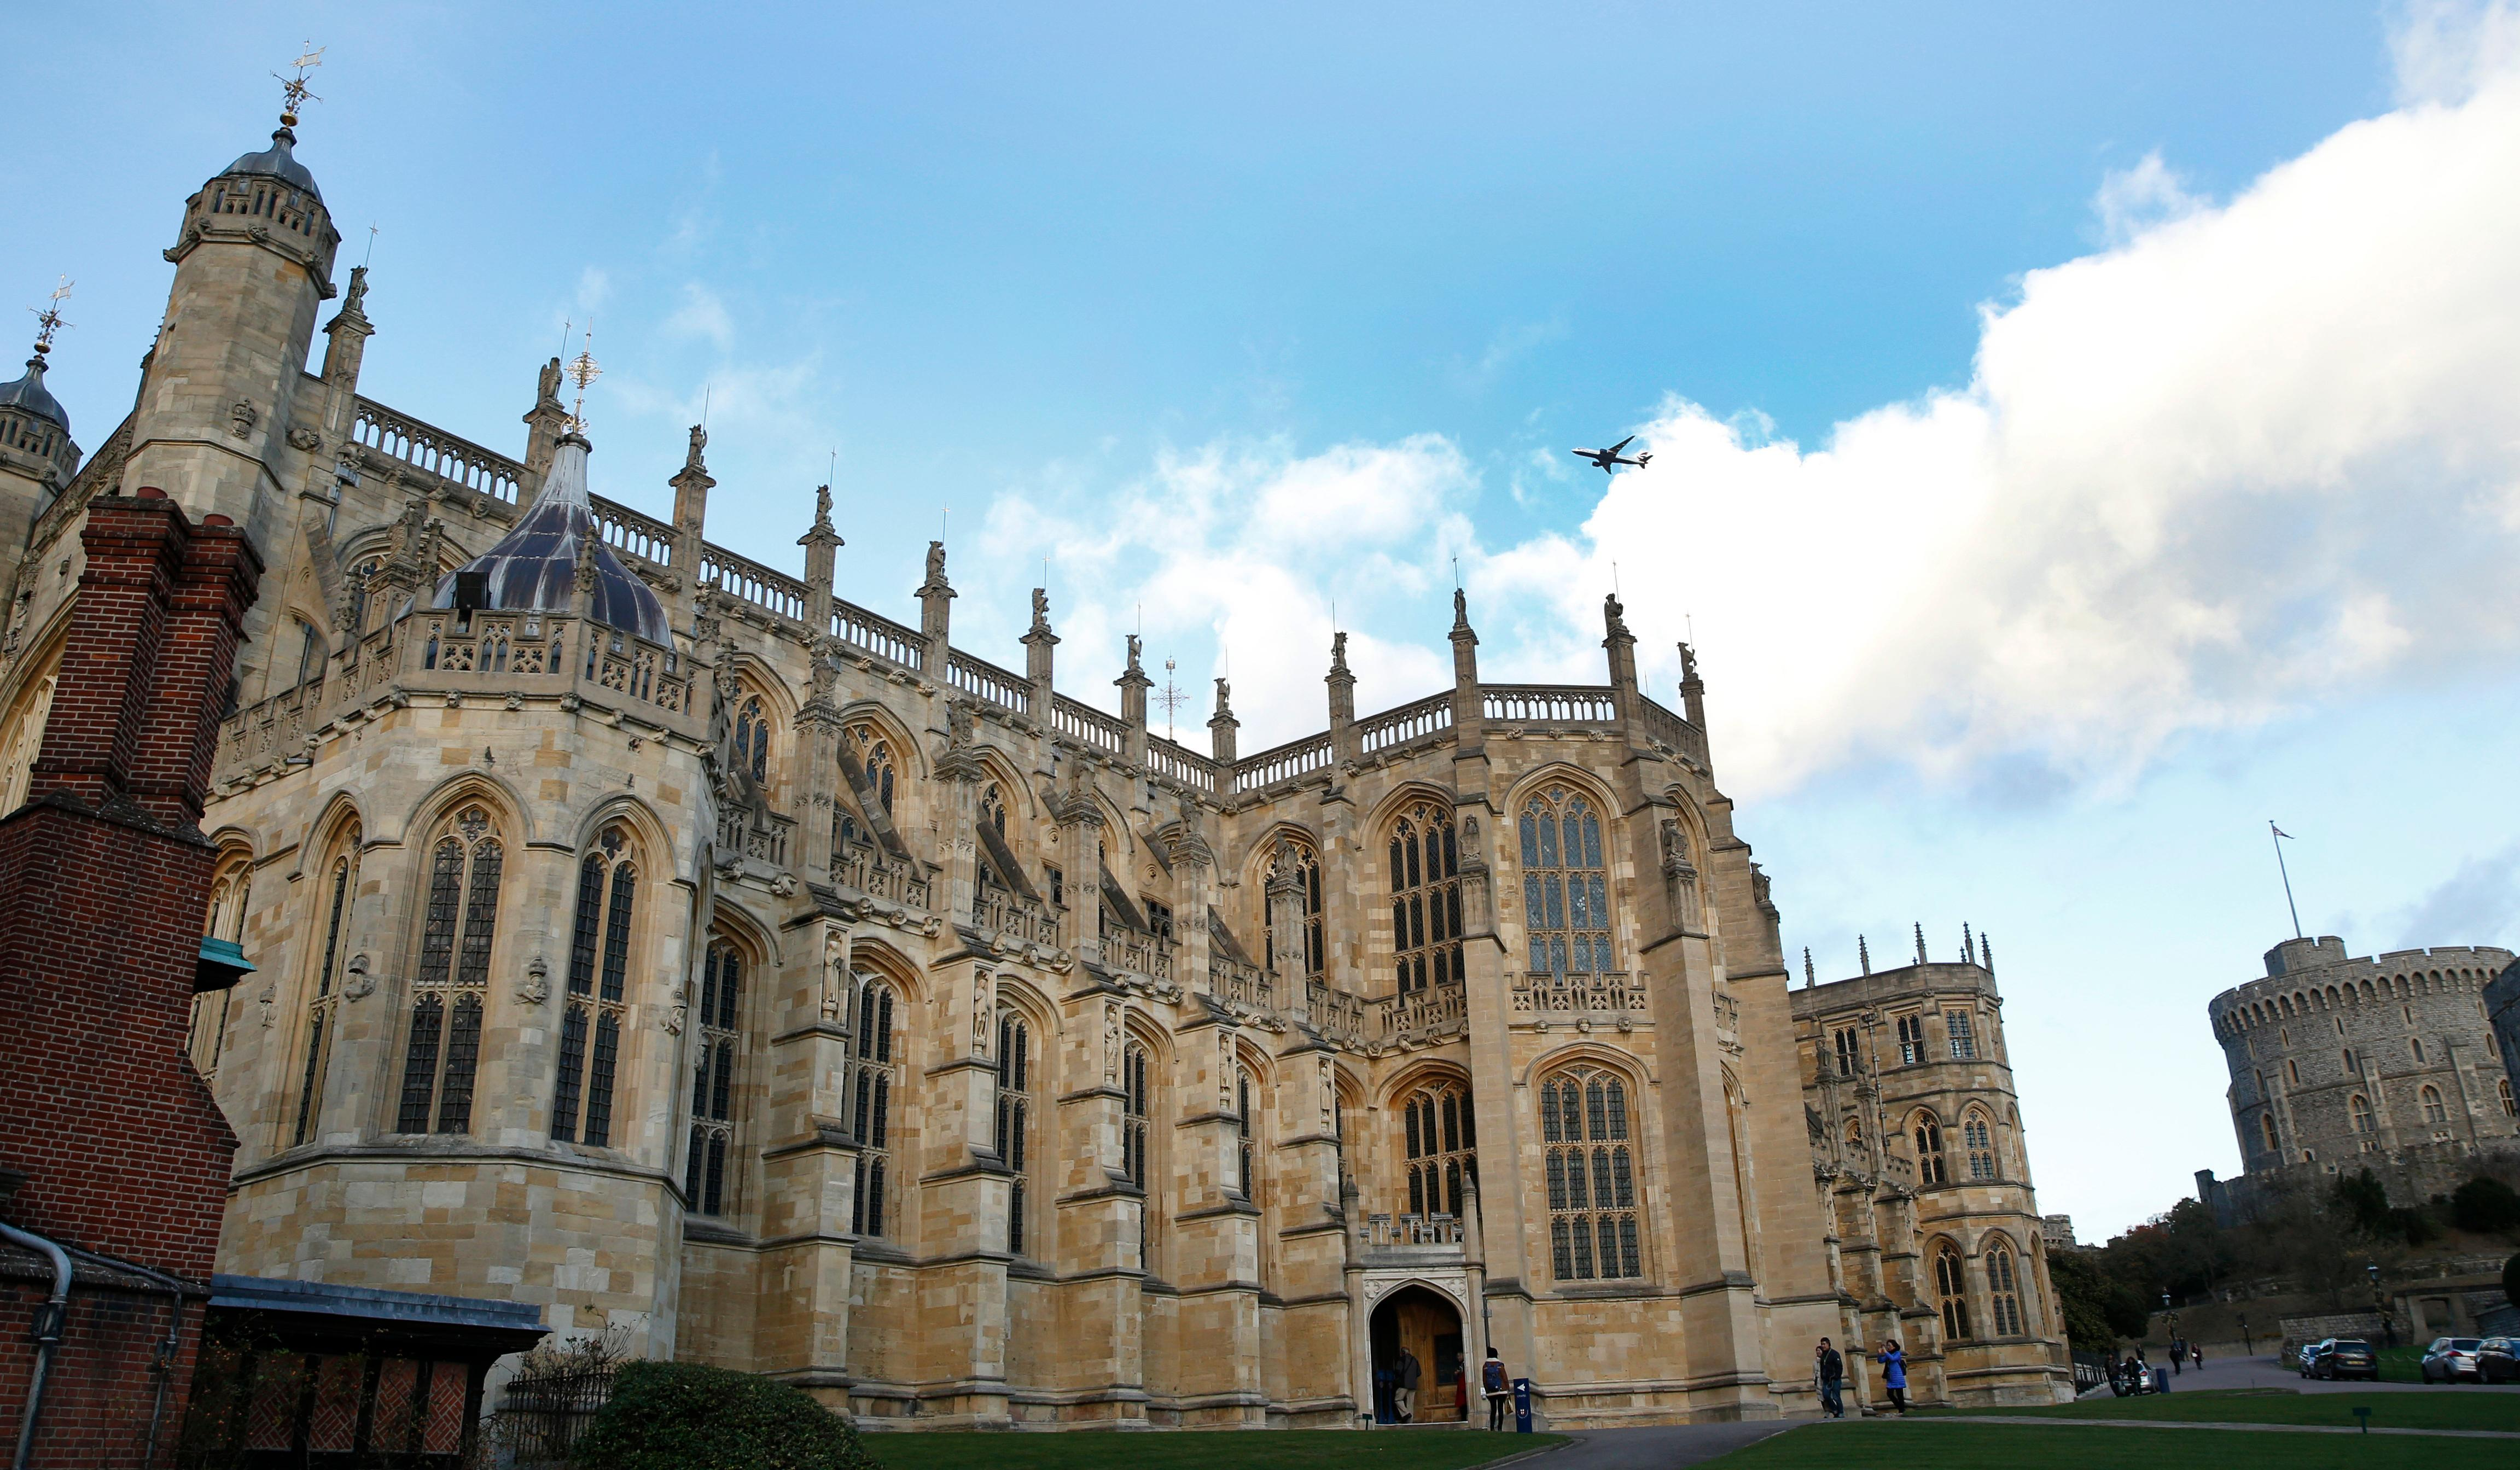 FILE - This Tuesday, Nov. 28, 2017 file photo shows a general view of St George's Chapel within the walls of of Windsor Castle, in Windsor, England. Prince Harry and his fiancee, American actress Meghan Markle, have released more details about their May 19 wedding, revealing that the event will include a carriage ride through Windsor so they can share the big day with the public. The couple will marry at noon in St George's Chapel, the 15th-Century church on the grounds of Windsor Castle that has long been the backdrop of choice for royal occasions. Harry's grandmother, Queen Elizabeth II, gave permission for use of the venue and will attend the wedding. (AP Photo/Alastair Grant, File)